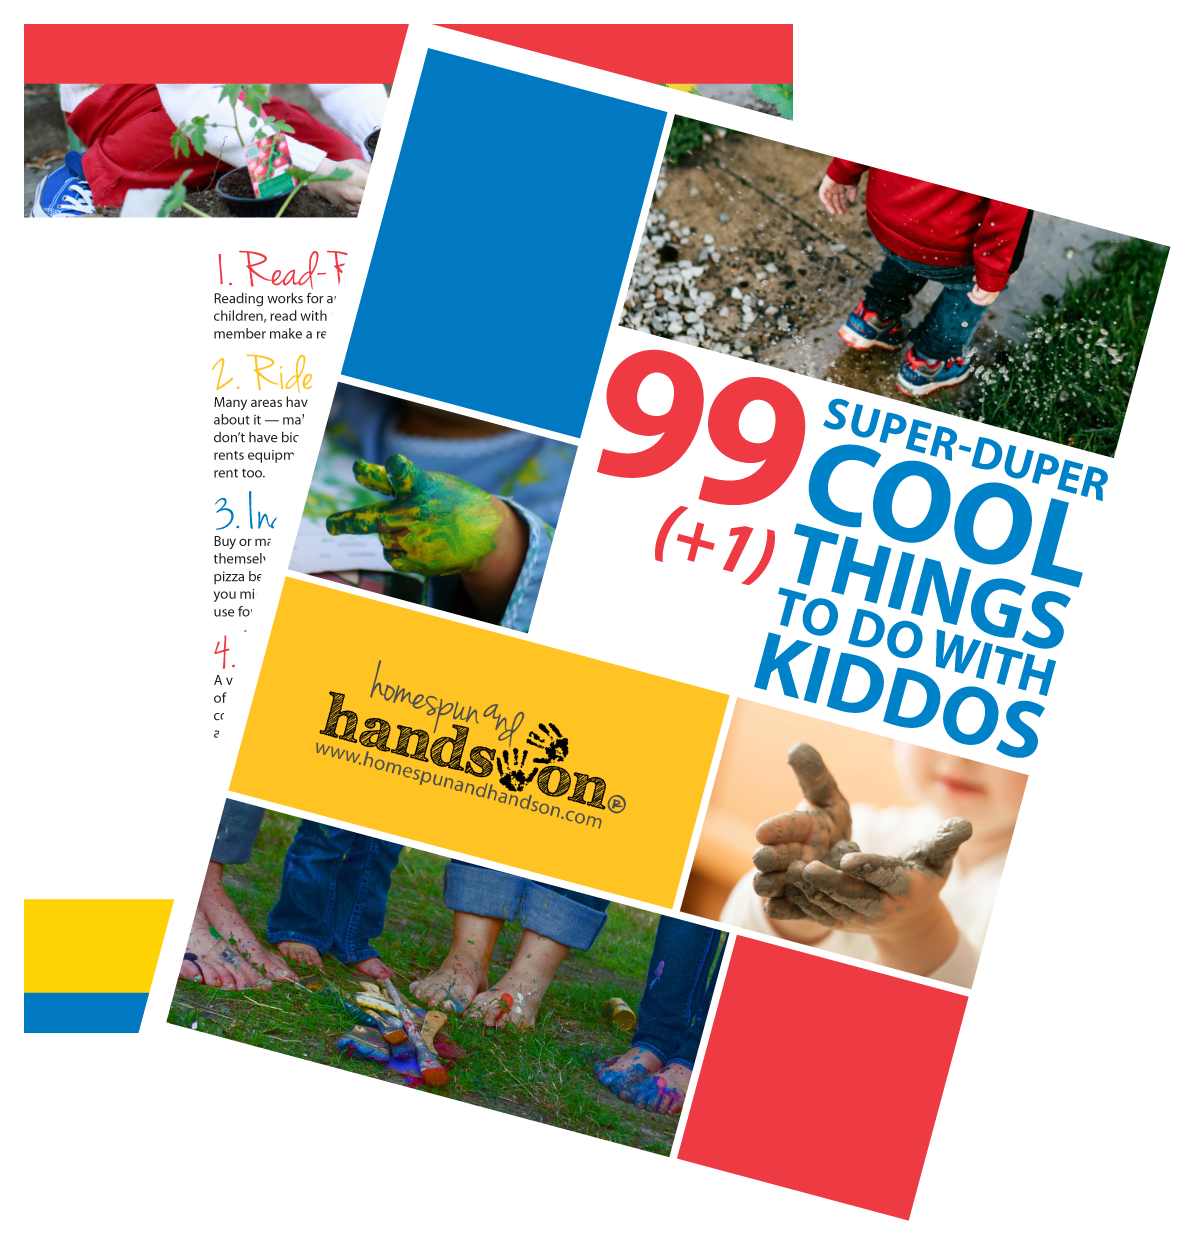 eBook — 99 Super-Duper Cool Things to Do with Kiddos